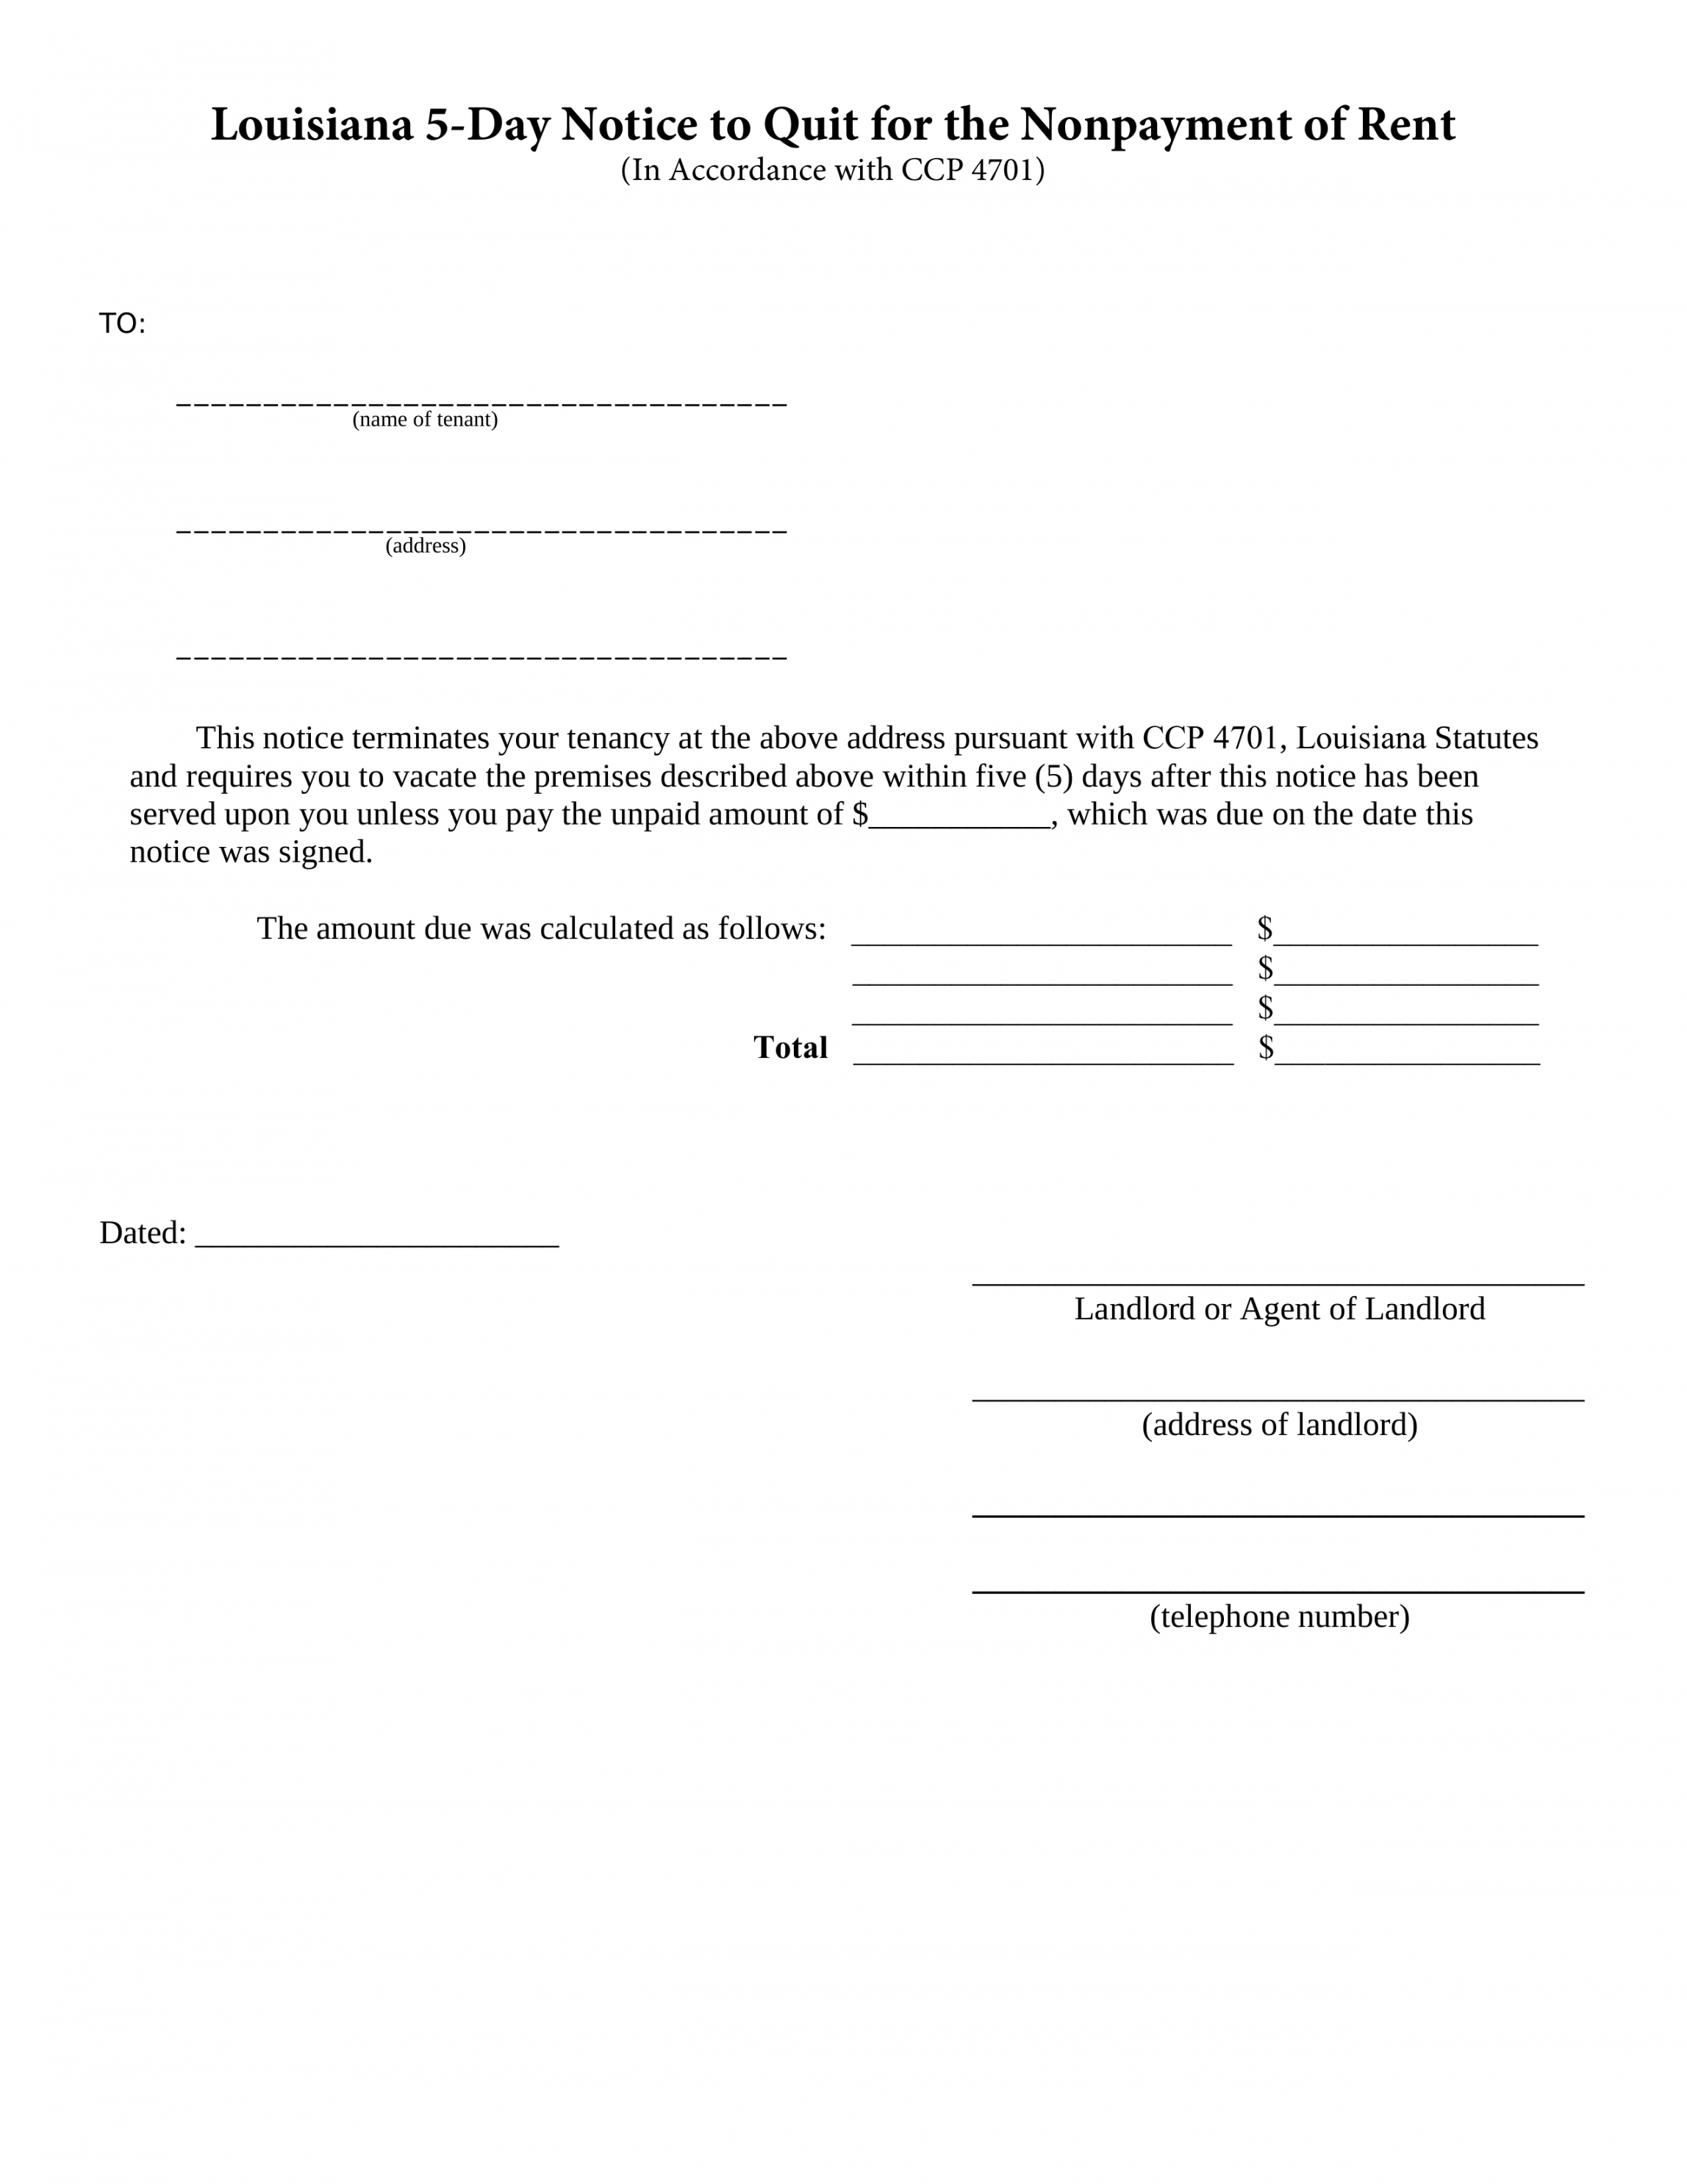 editable louisiana 5day notice to quit form  nonpayment of rent louisiana eviction notice template word